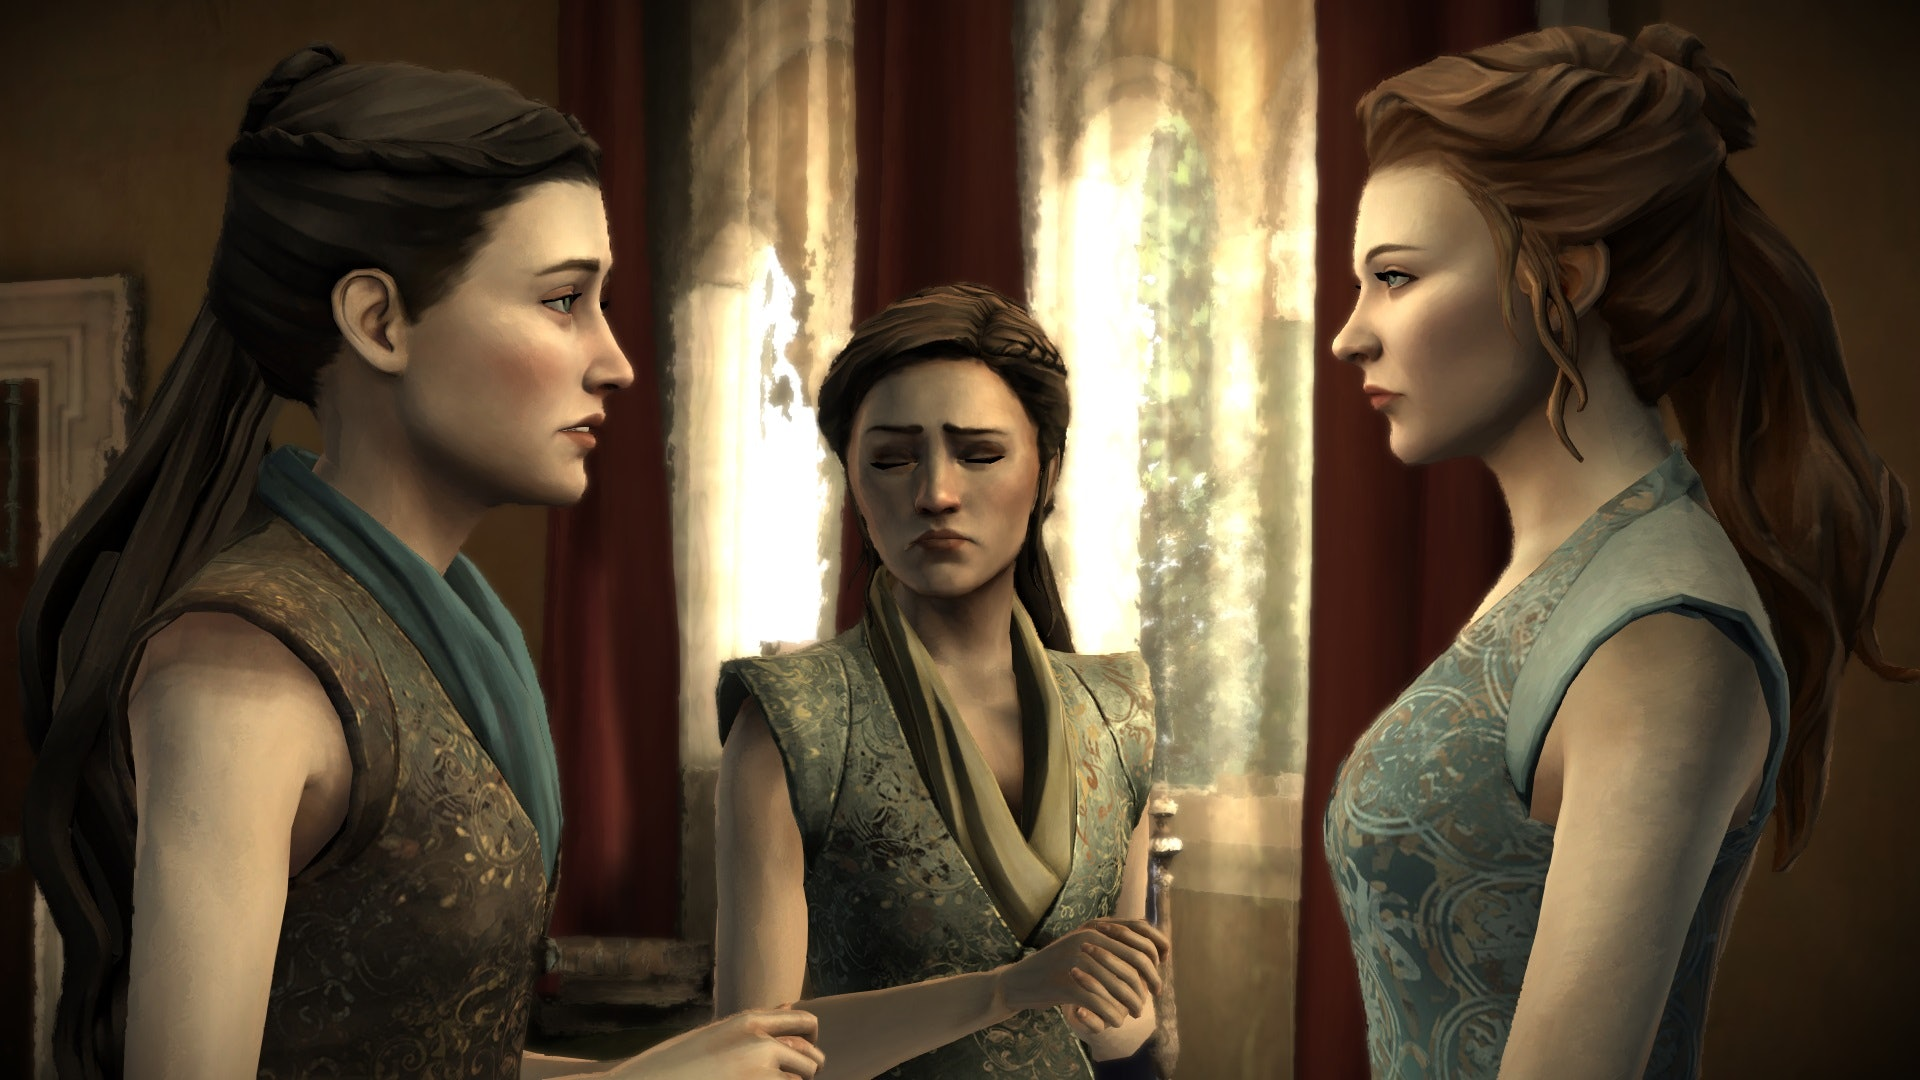 Game Of Thrones The Most Powerful Female Relationship In Westeros Isn T In The Hbo Show At All